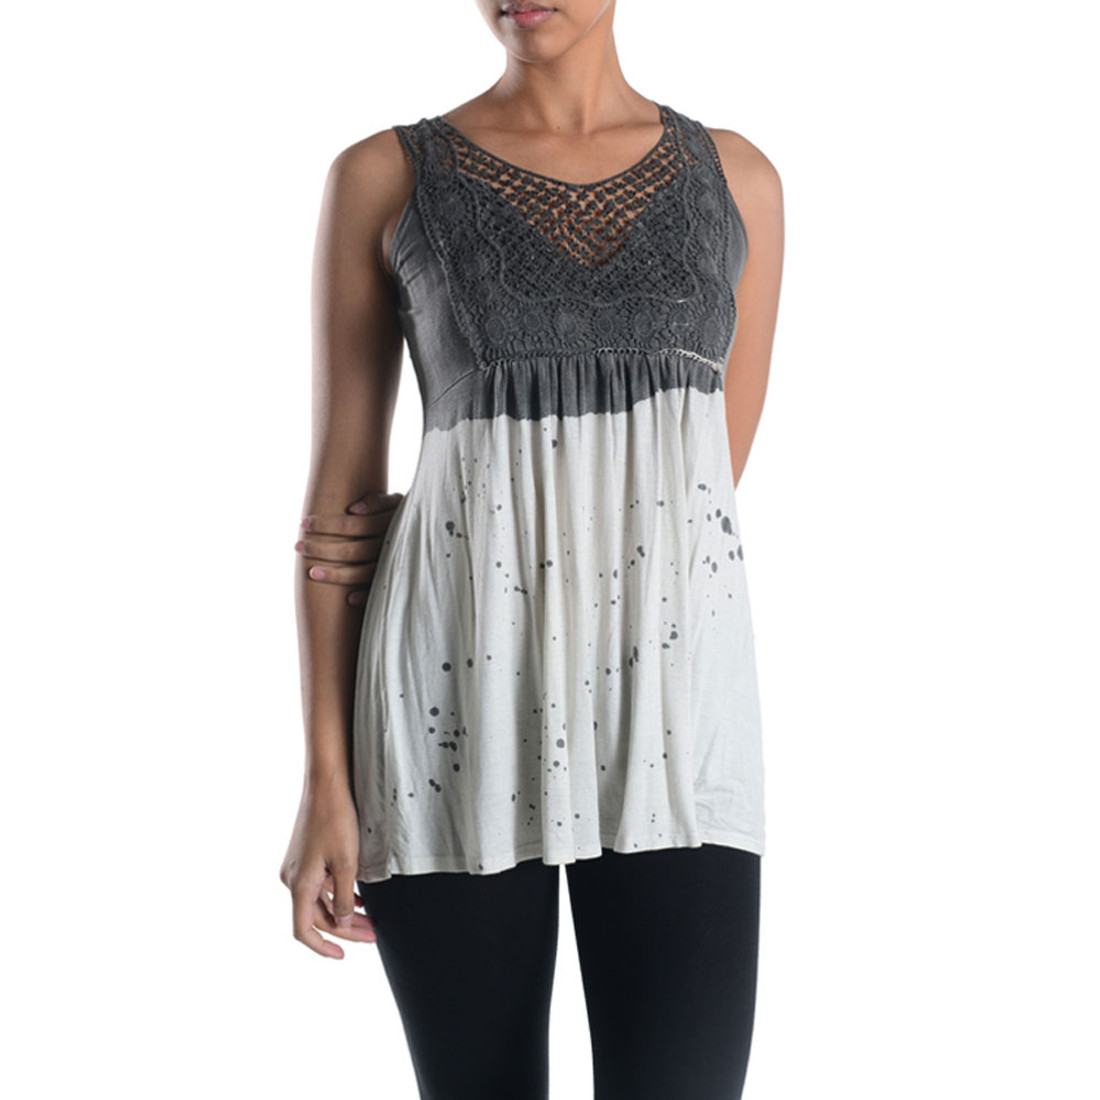 Women's Tank Top Tunic White and Gray with Lace Detail by TParty